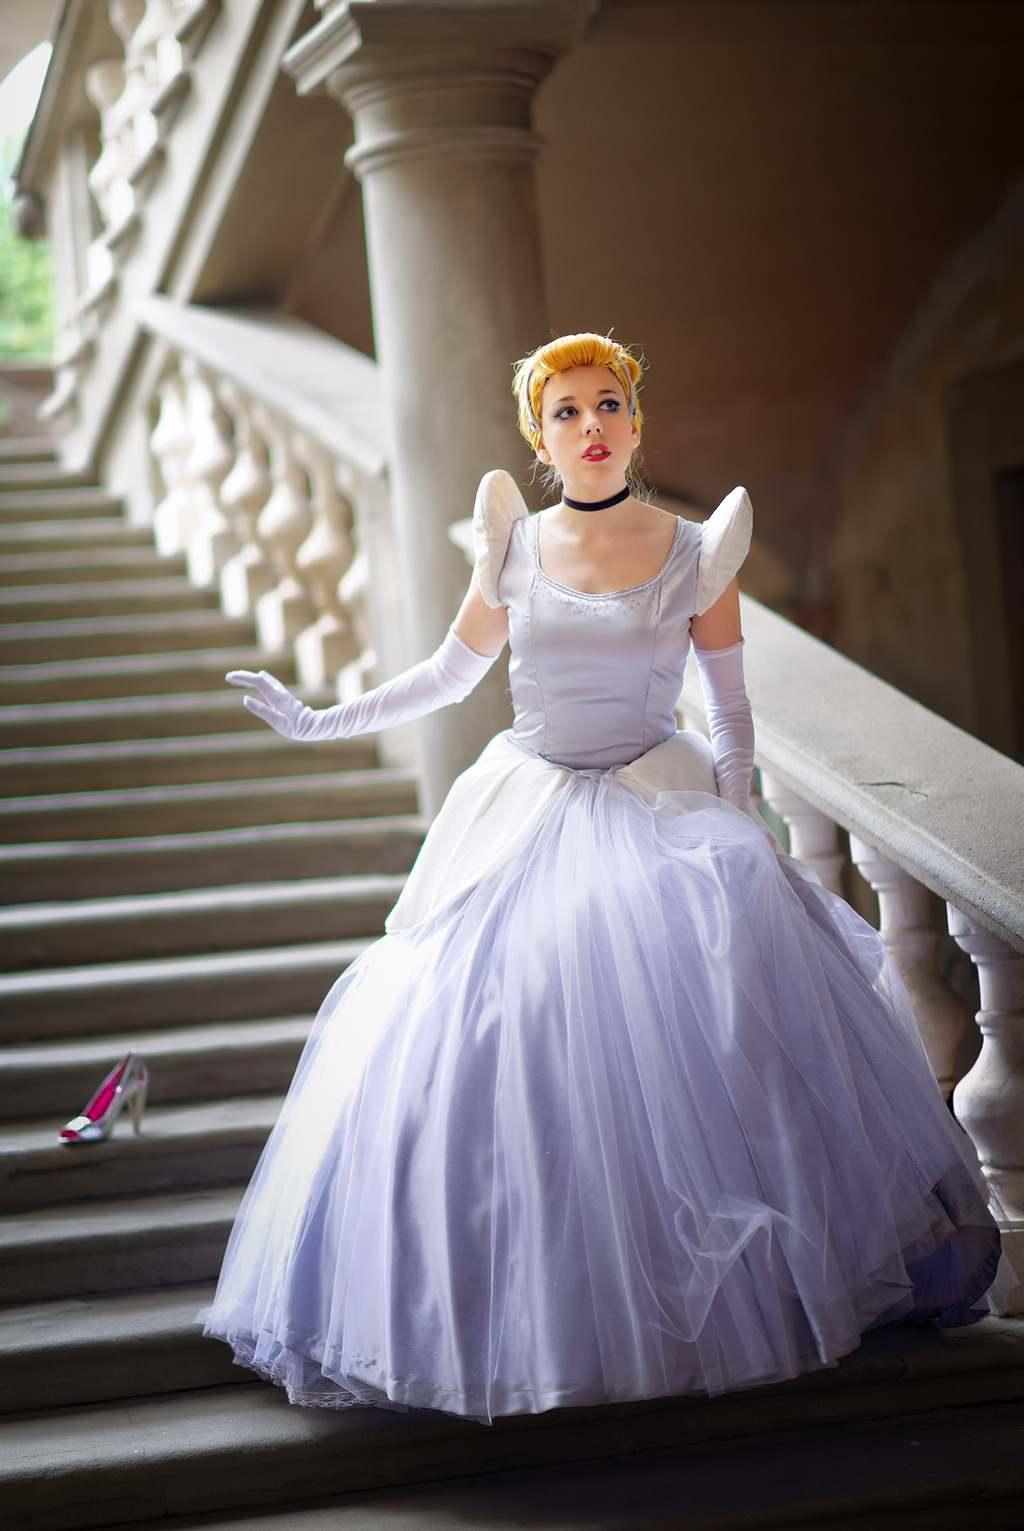 disneycosplayftw:  Cinderella by ~LadyGiselle Photo by Sandman-AC